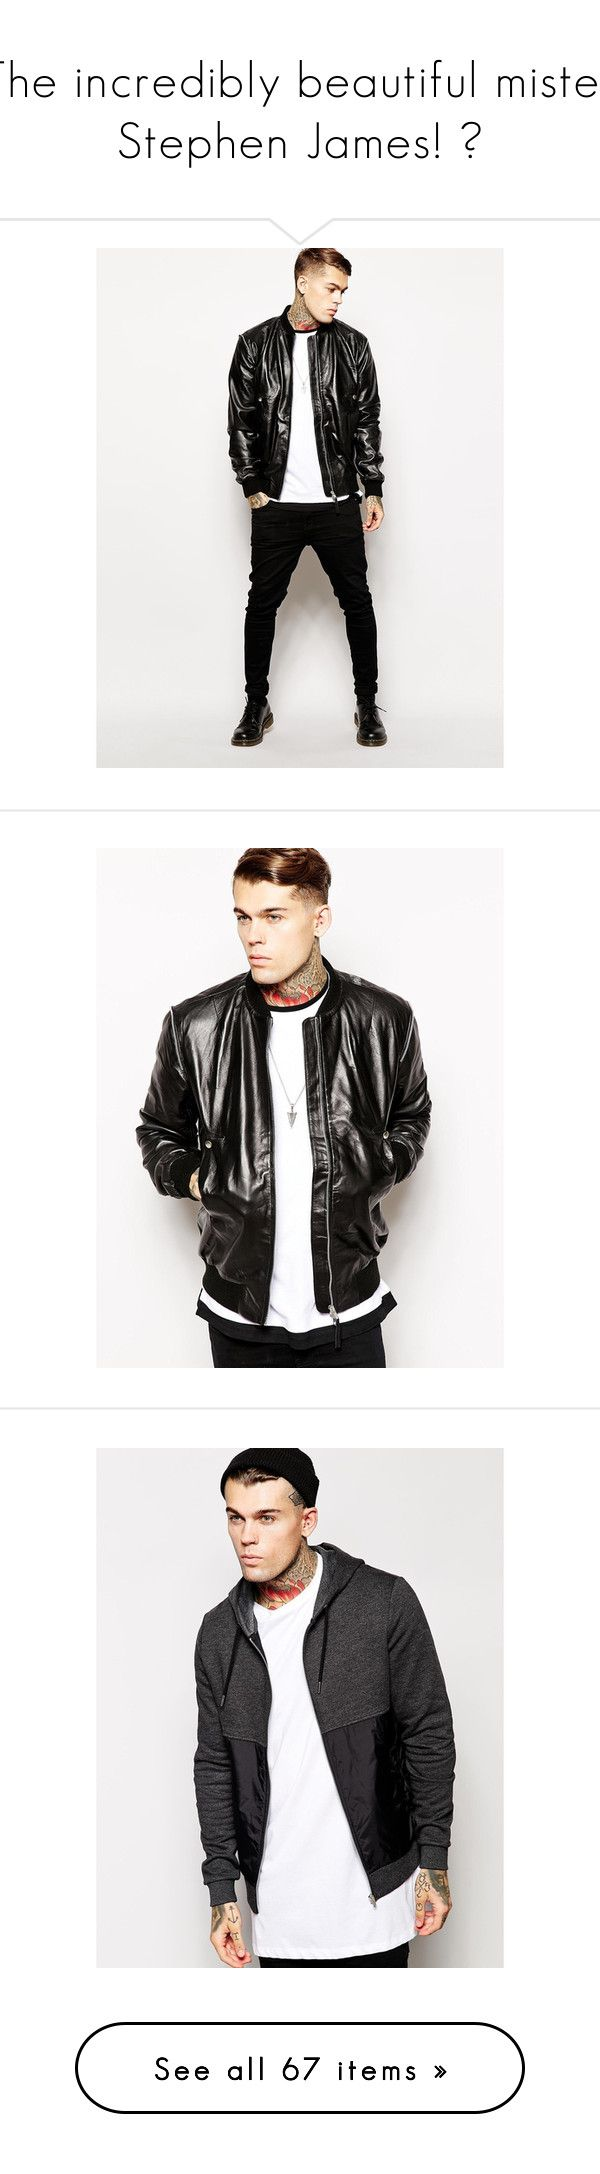 """The incredibly beautiful mister Stephen James! ♥"" by indahouseagain ❤ liked on Polyvore featuring ASOS, Model, StephenJames, stephen james, outerwear, jackets, black, real leather jackets, zipper jacket and bomber style jacket"